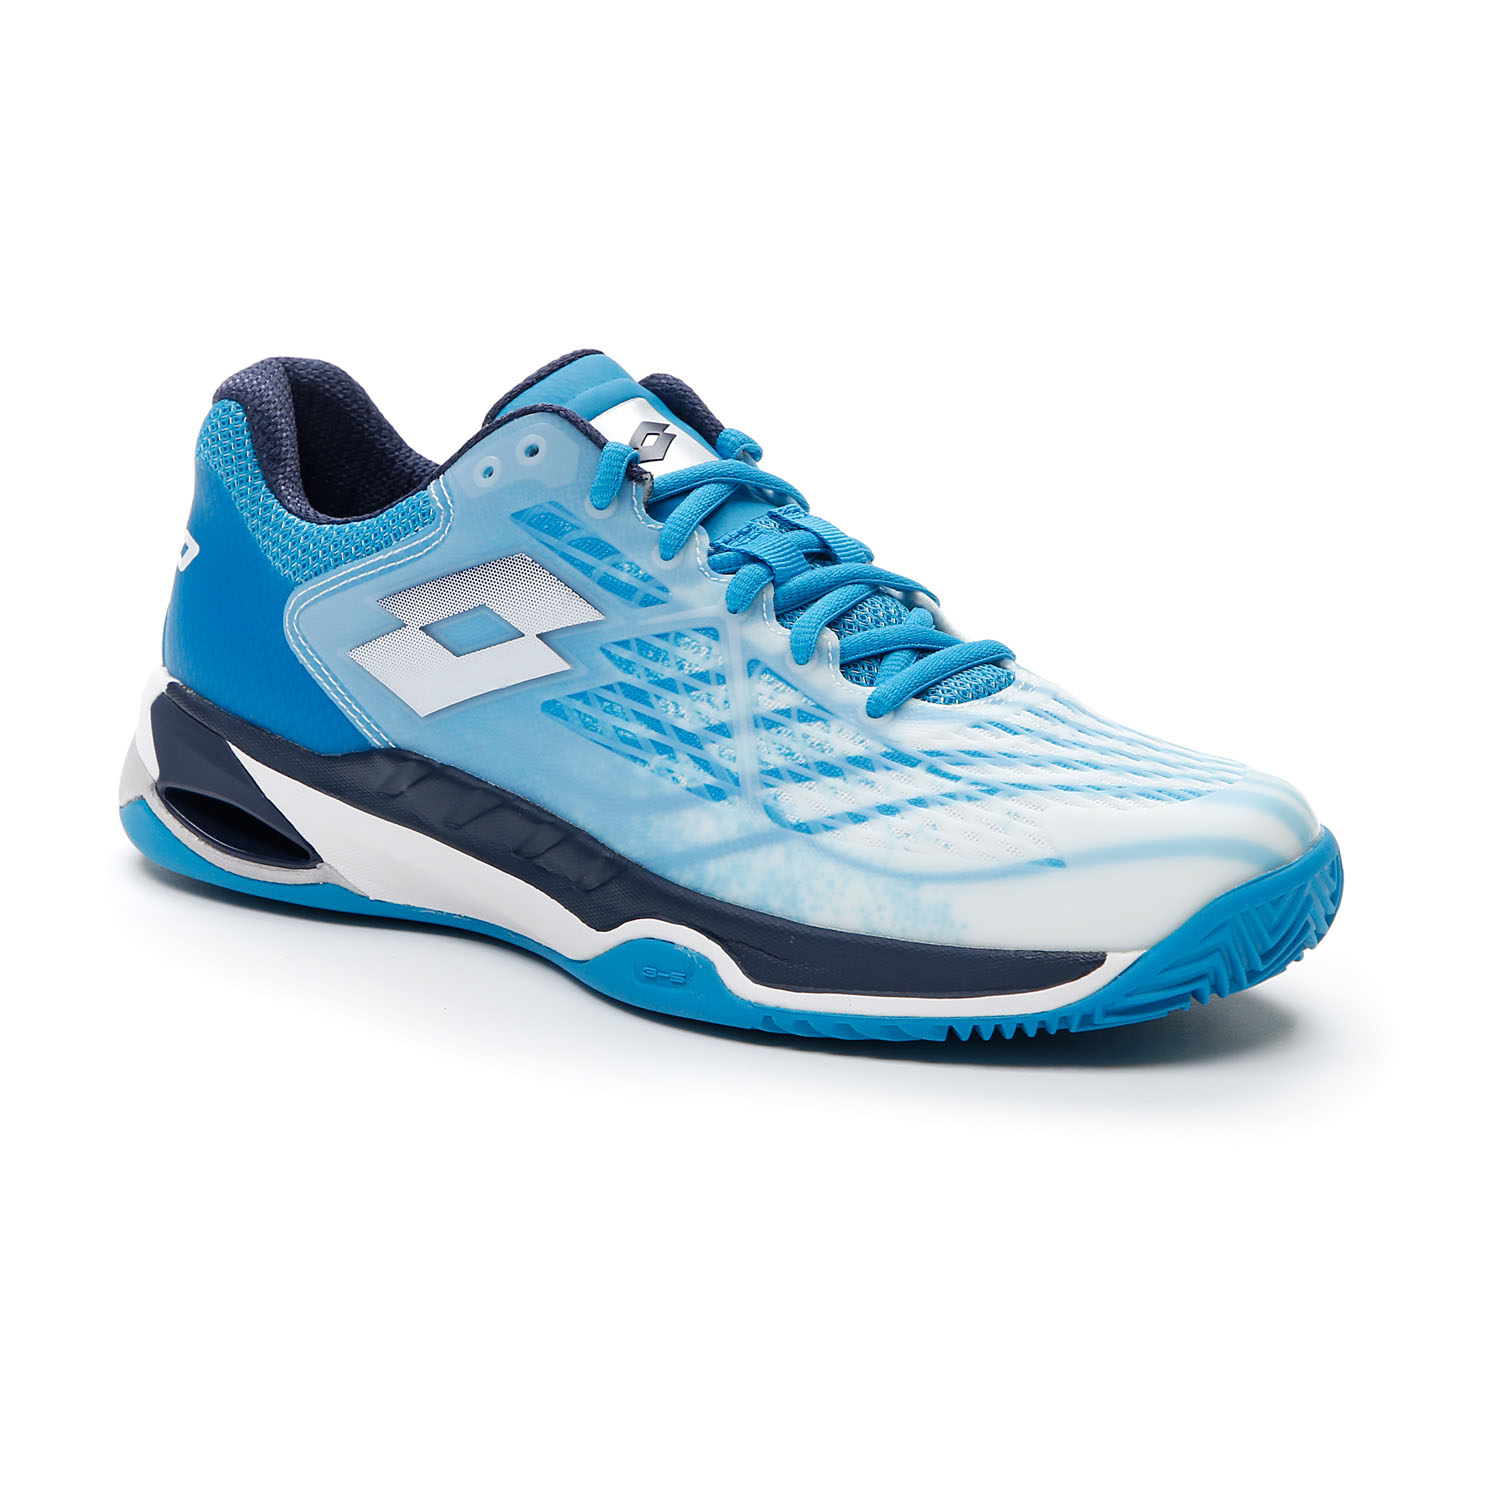 Lotto Mirage 100 Clay - All White/Navy Blue/Blue Bay